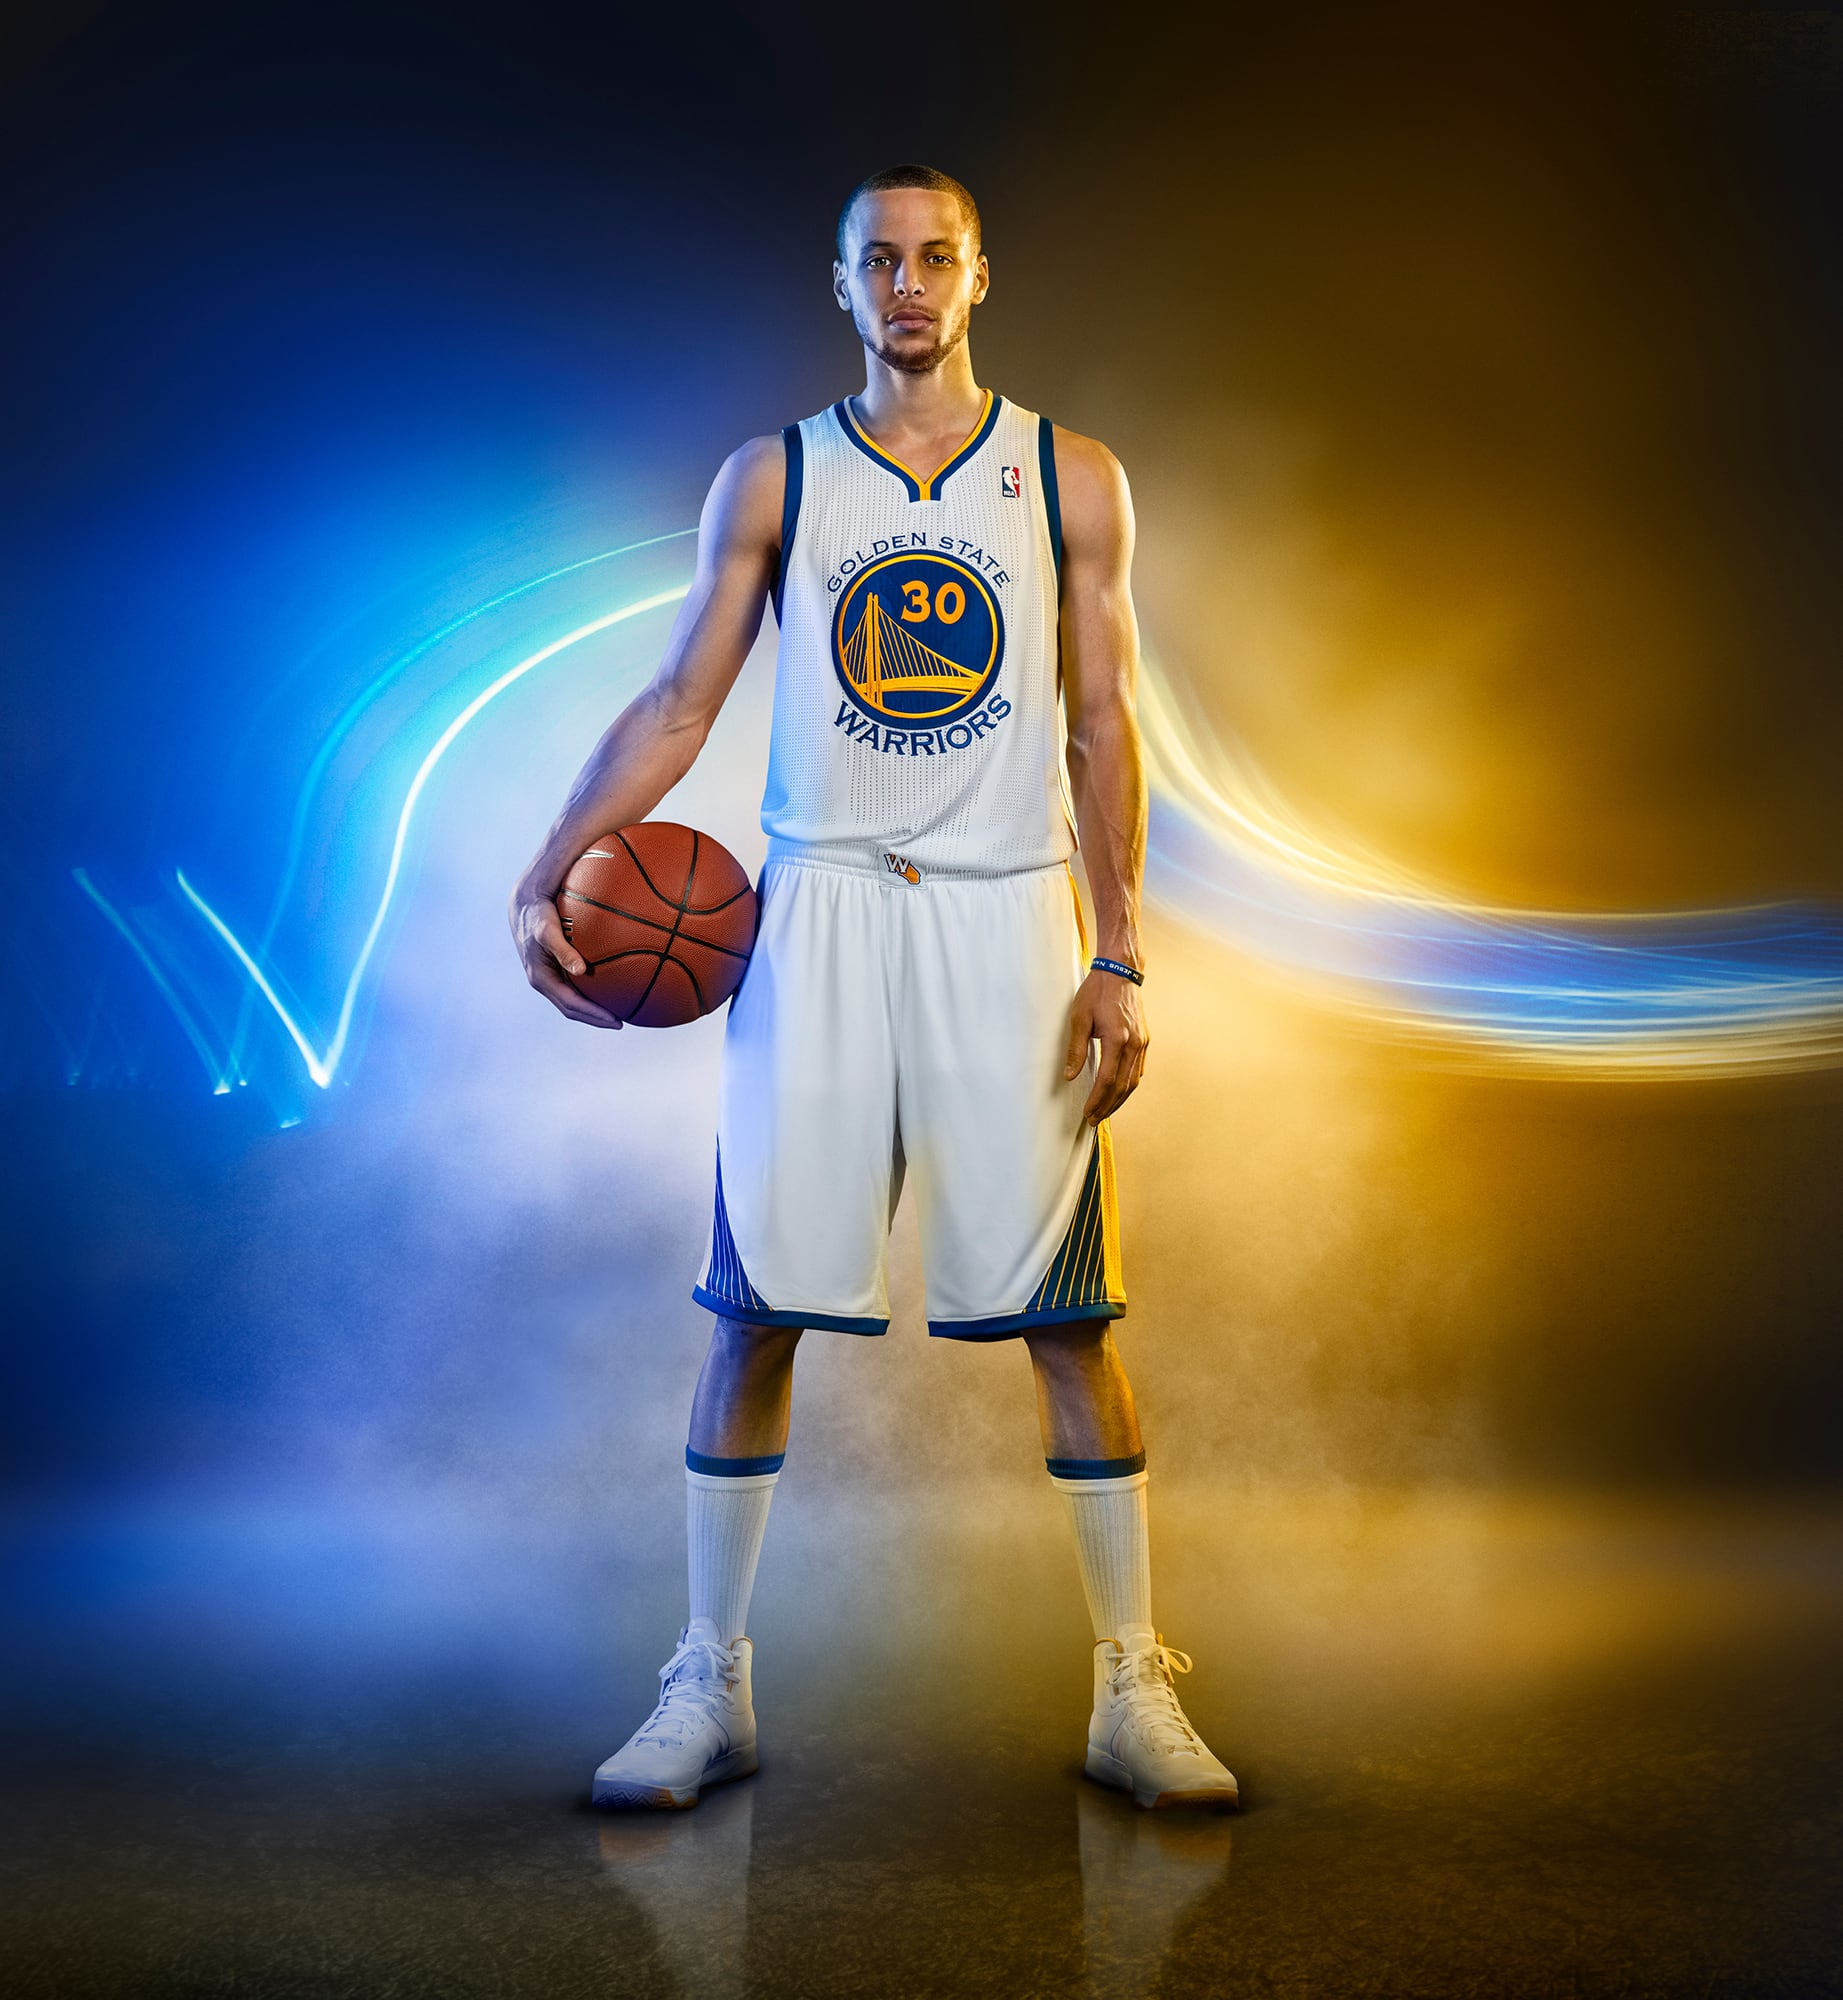 Stephen Curry Photographed by Athlete Photographer Blair Bunting